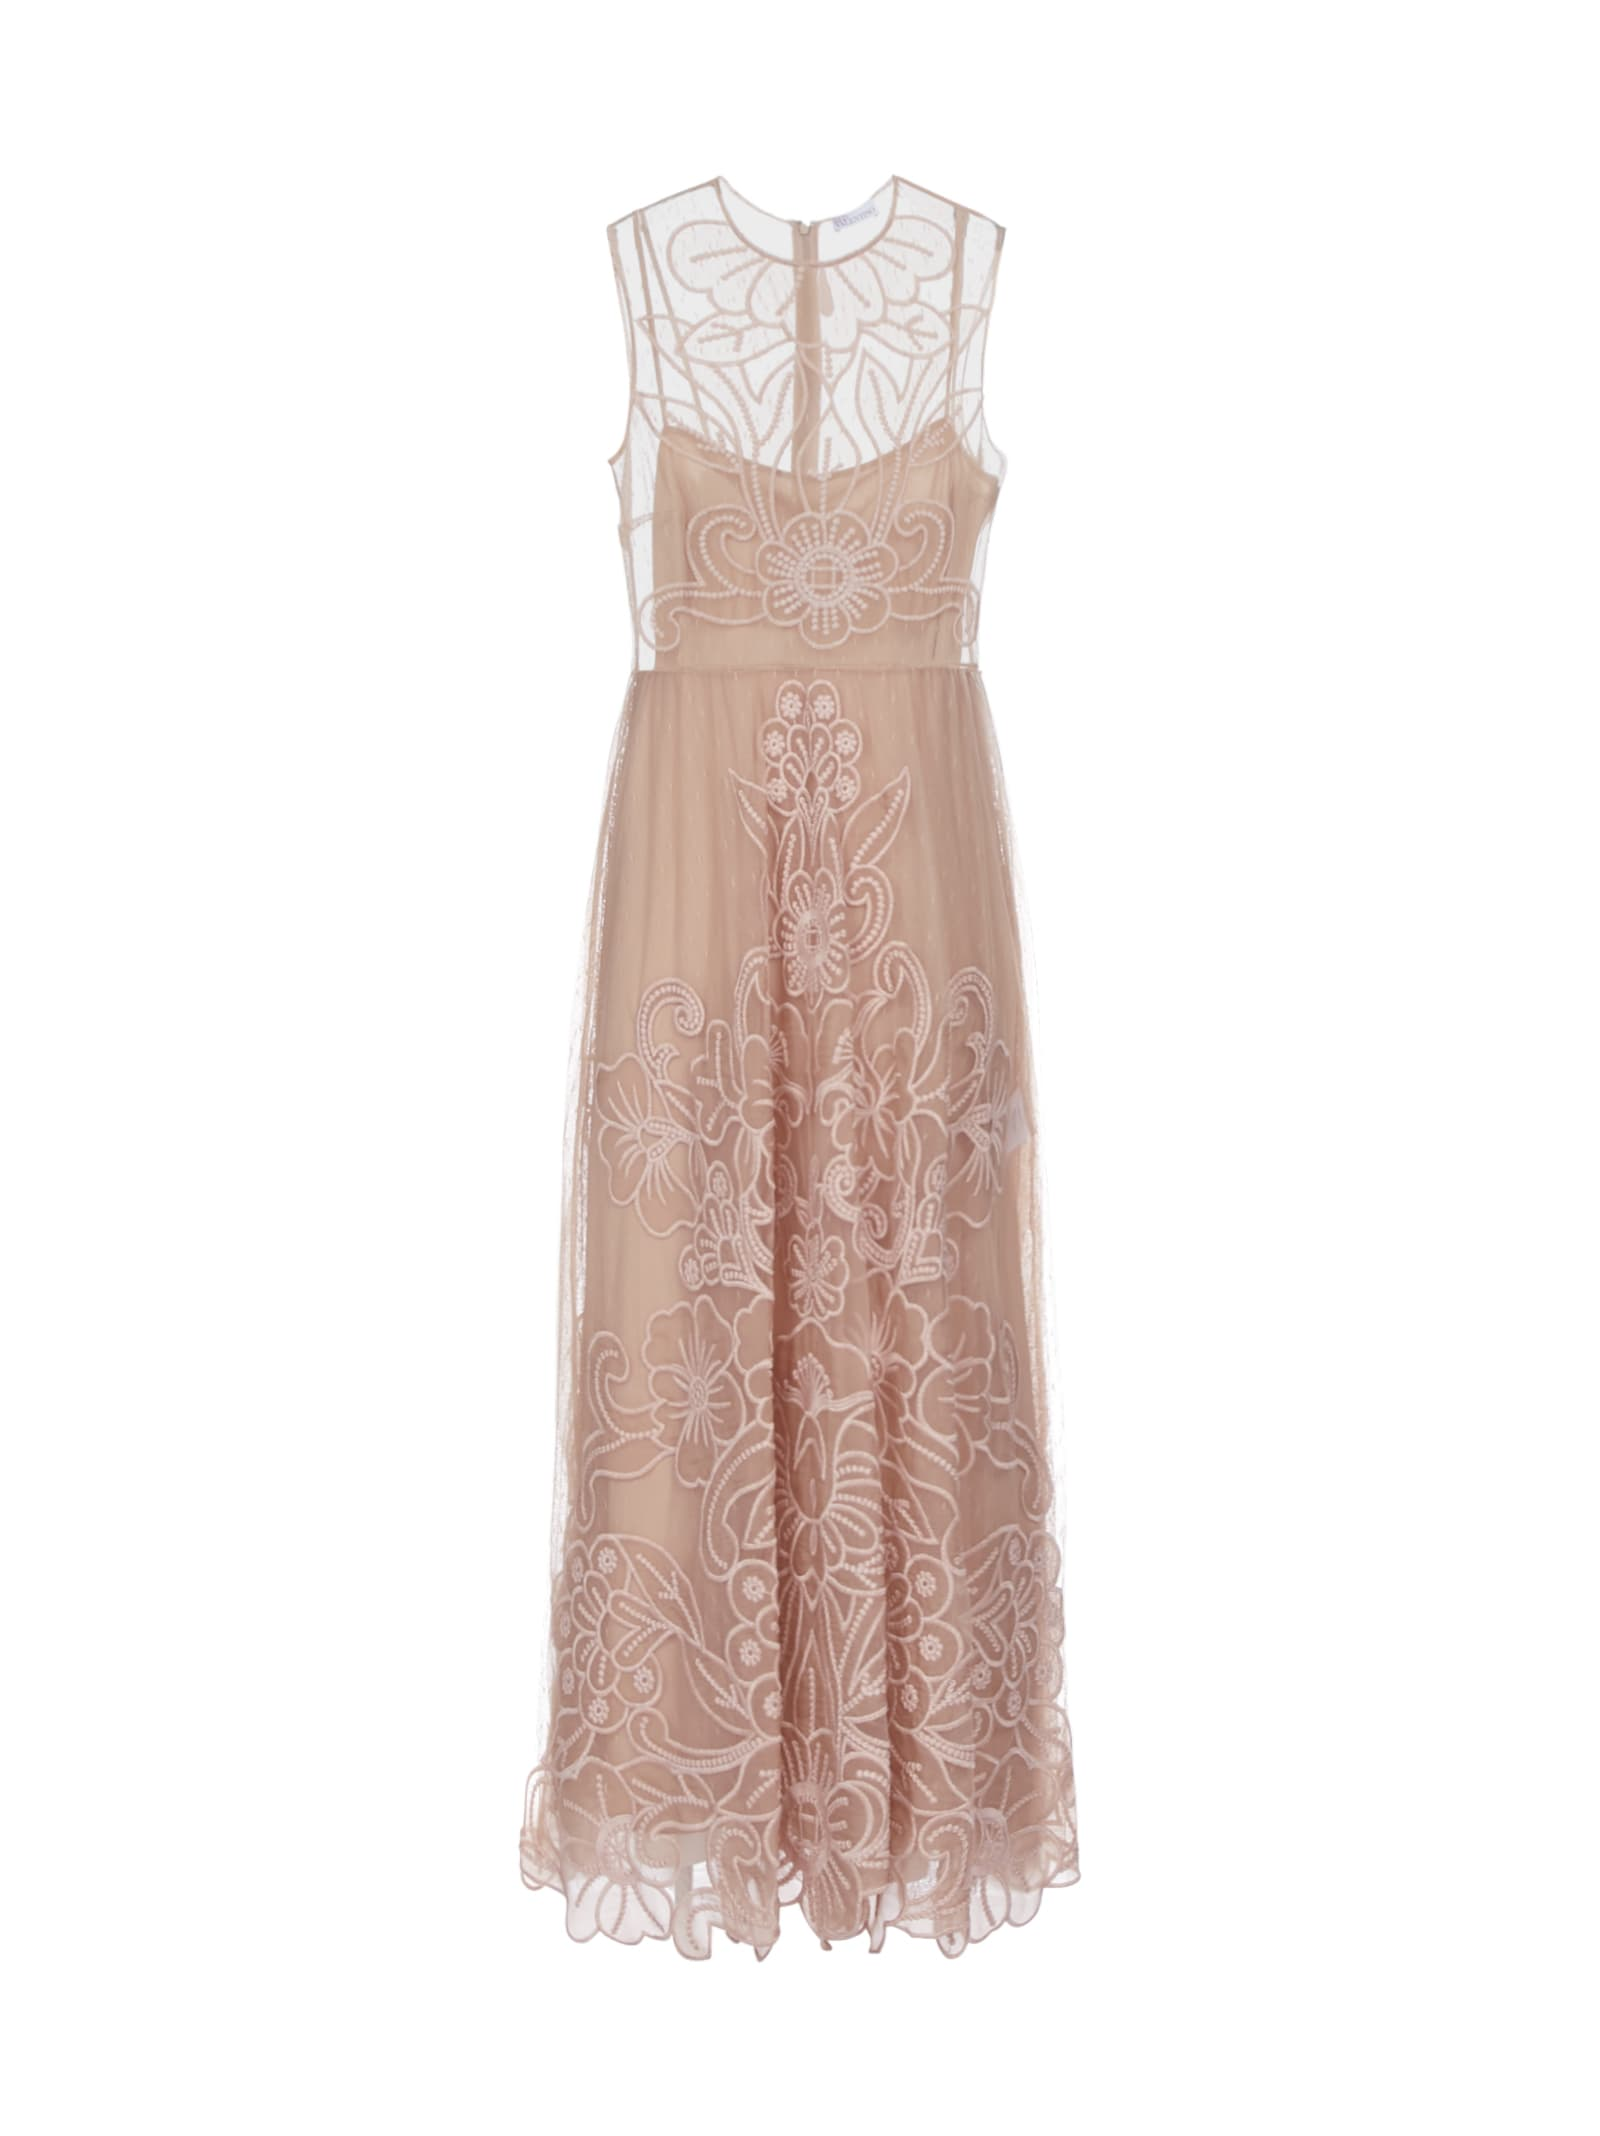 RED Valentino Organza Cut Out Floreale Dress